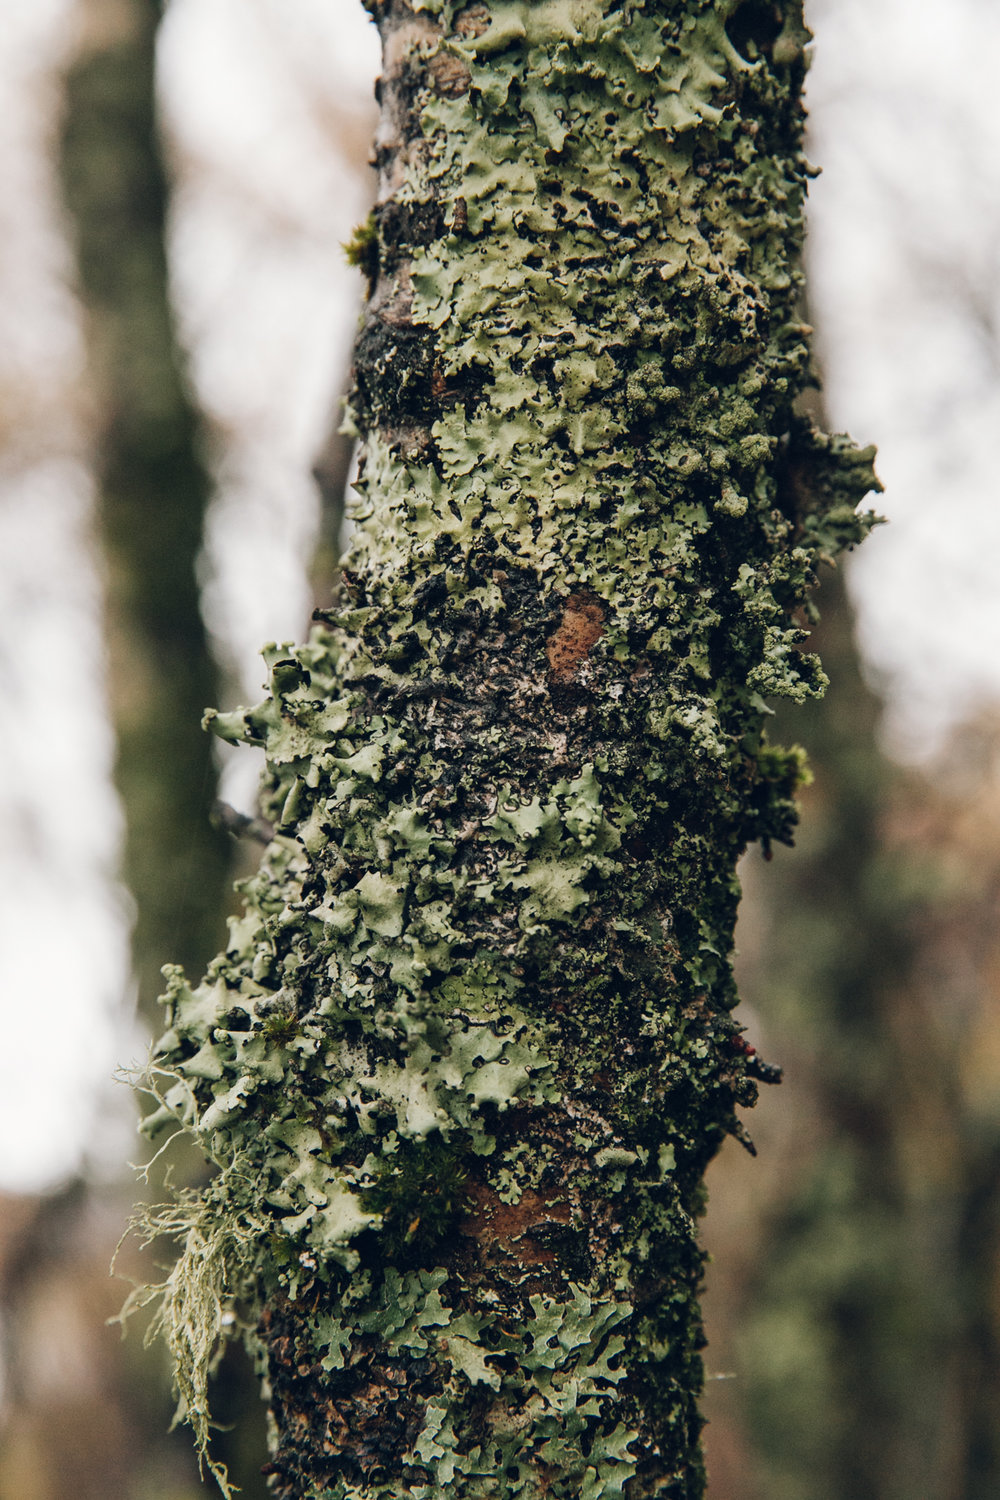 Lichen on a tree trunk.